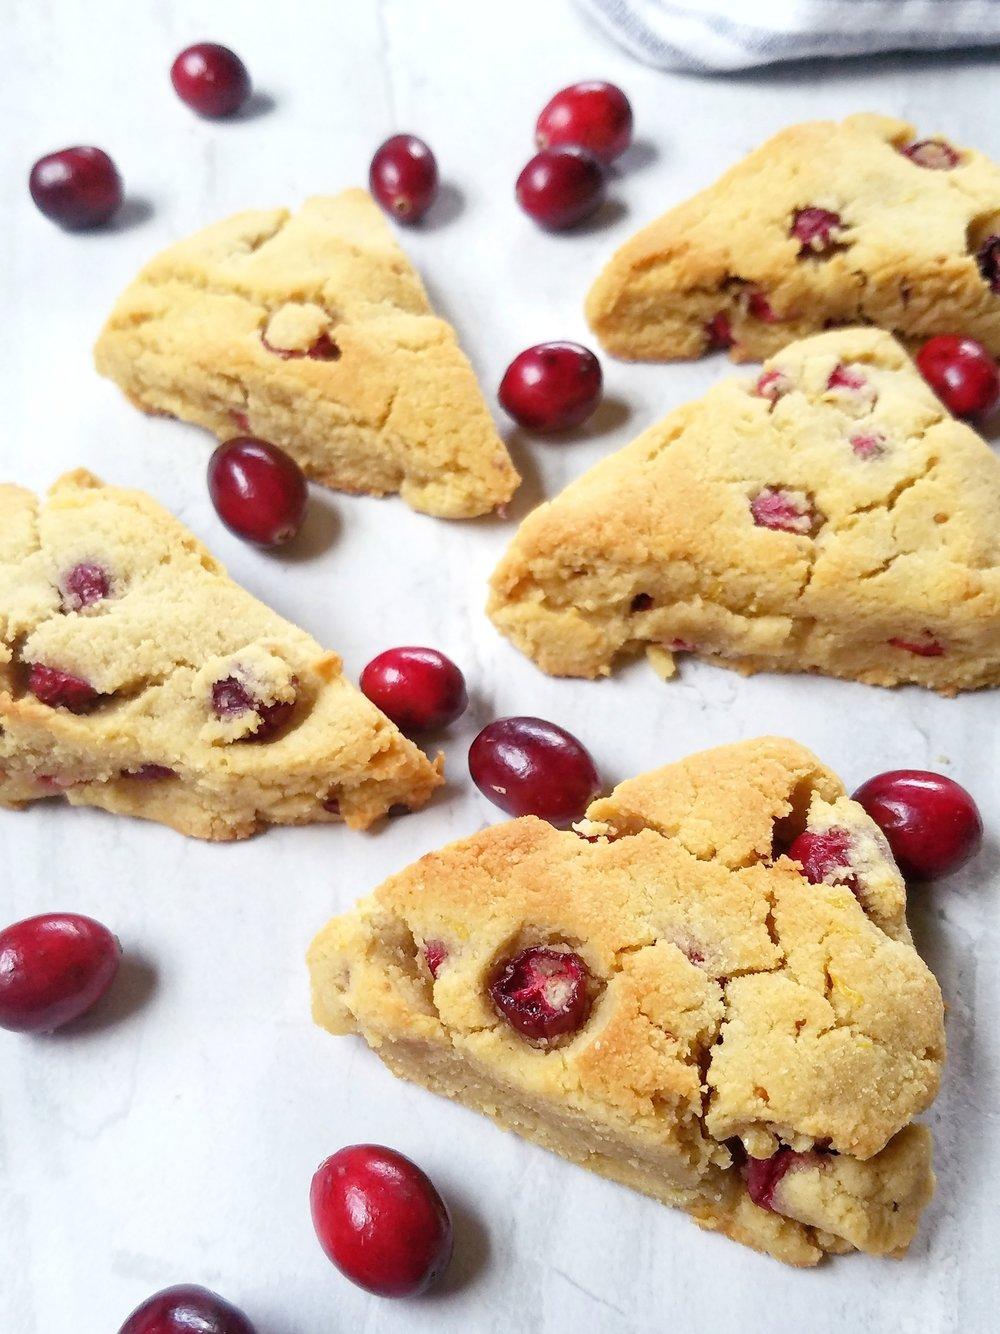 Gluten-Free Grain-Free Cranberry Orange Scones